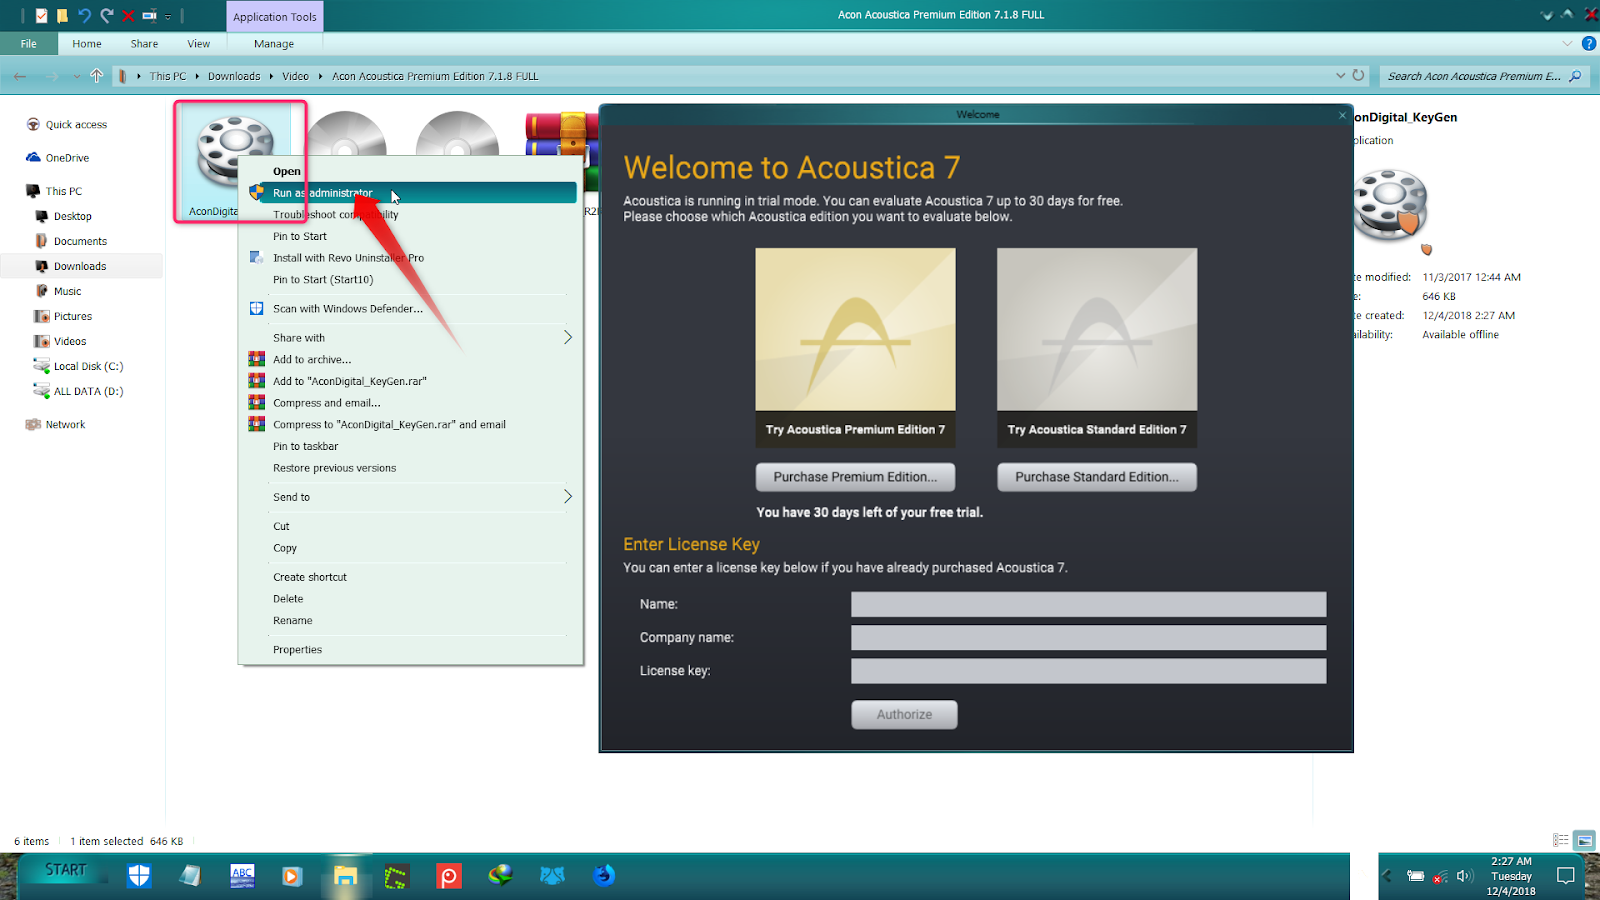 acoustica premium edition 5.0 free download